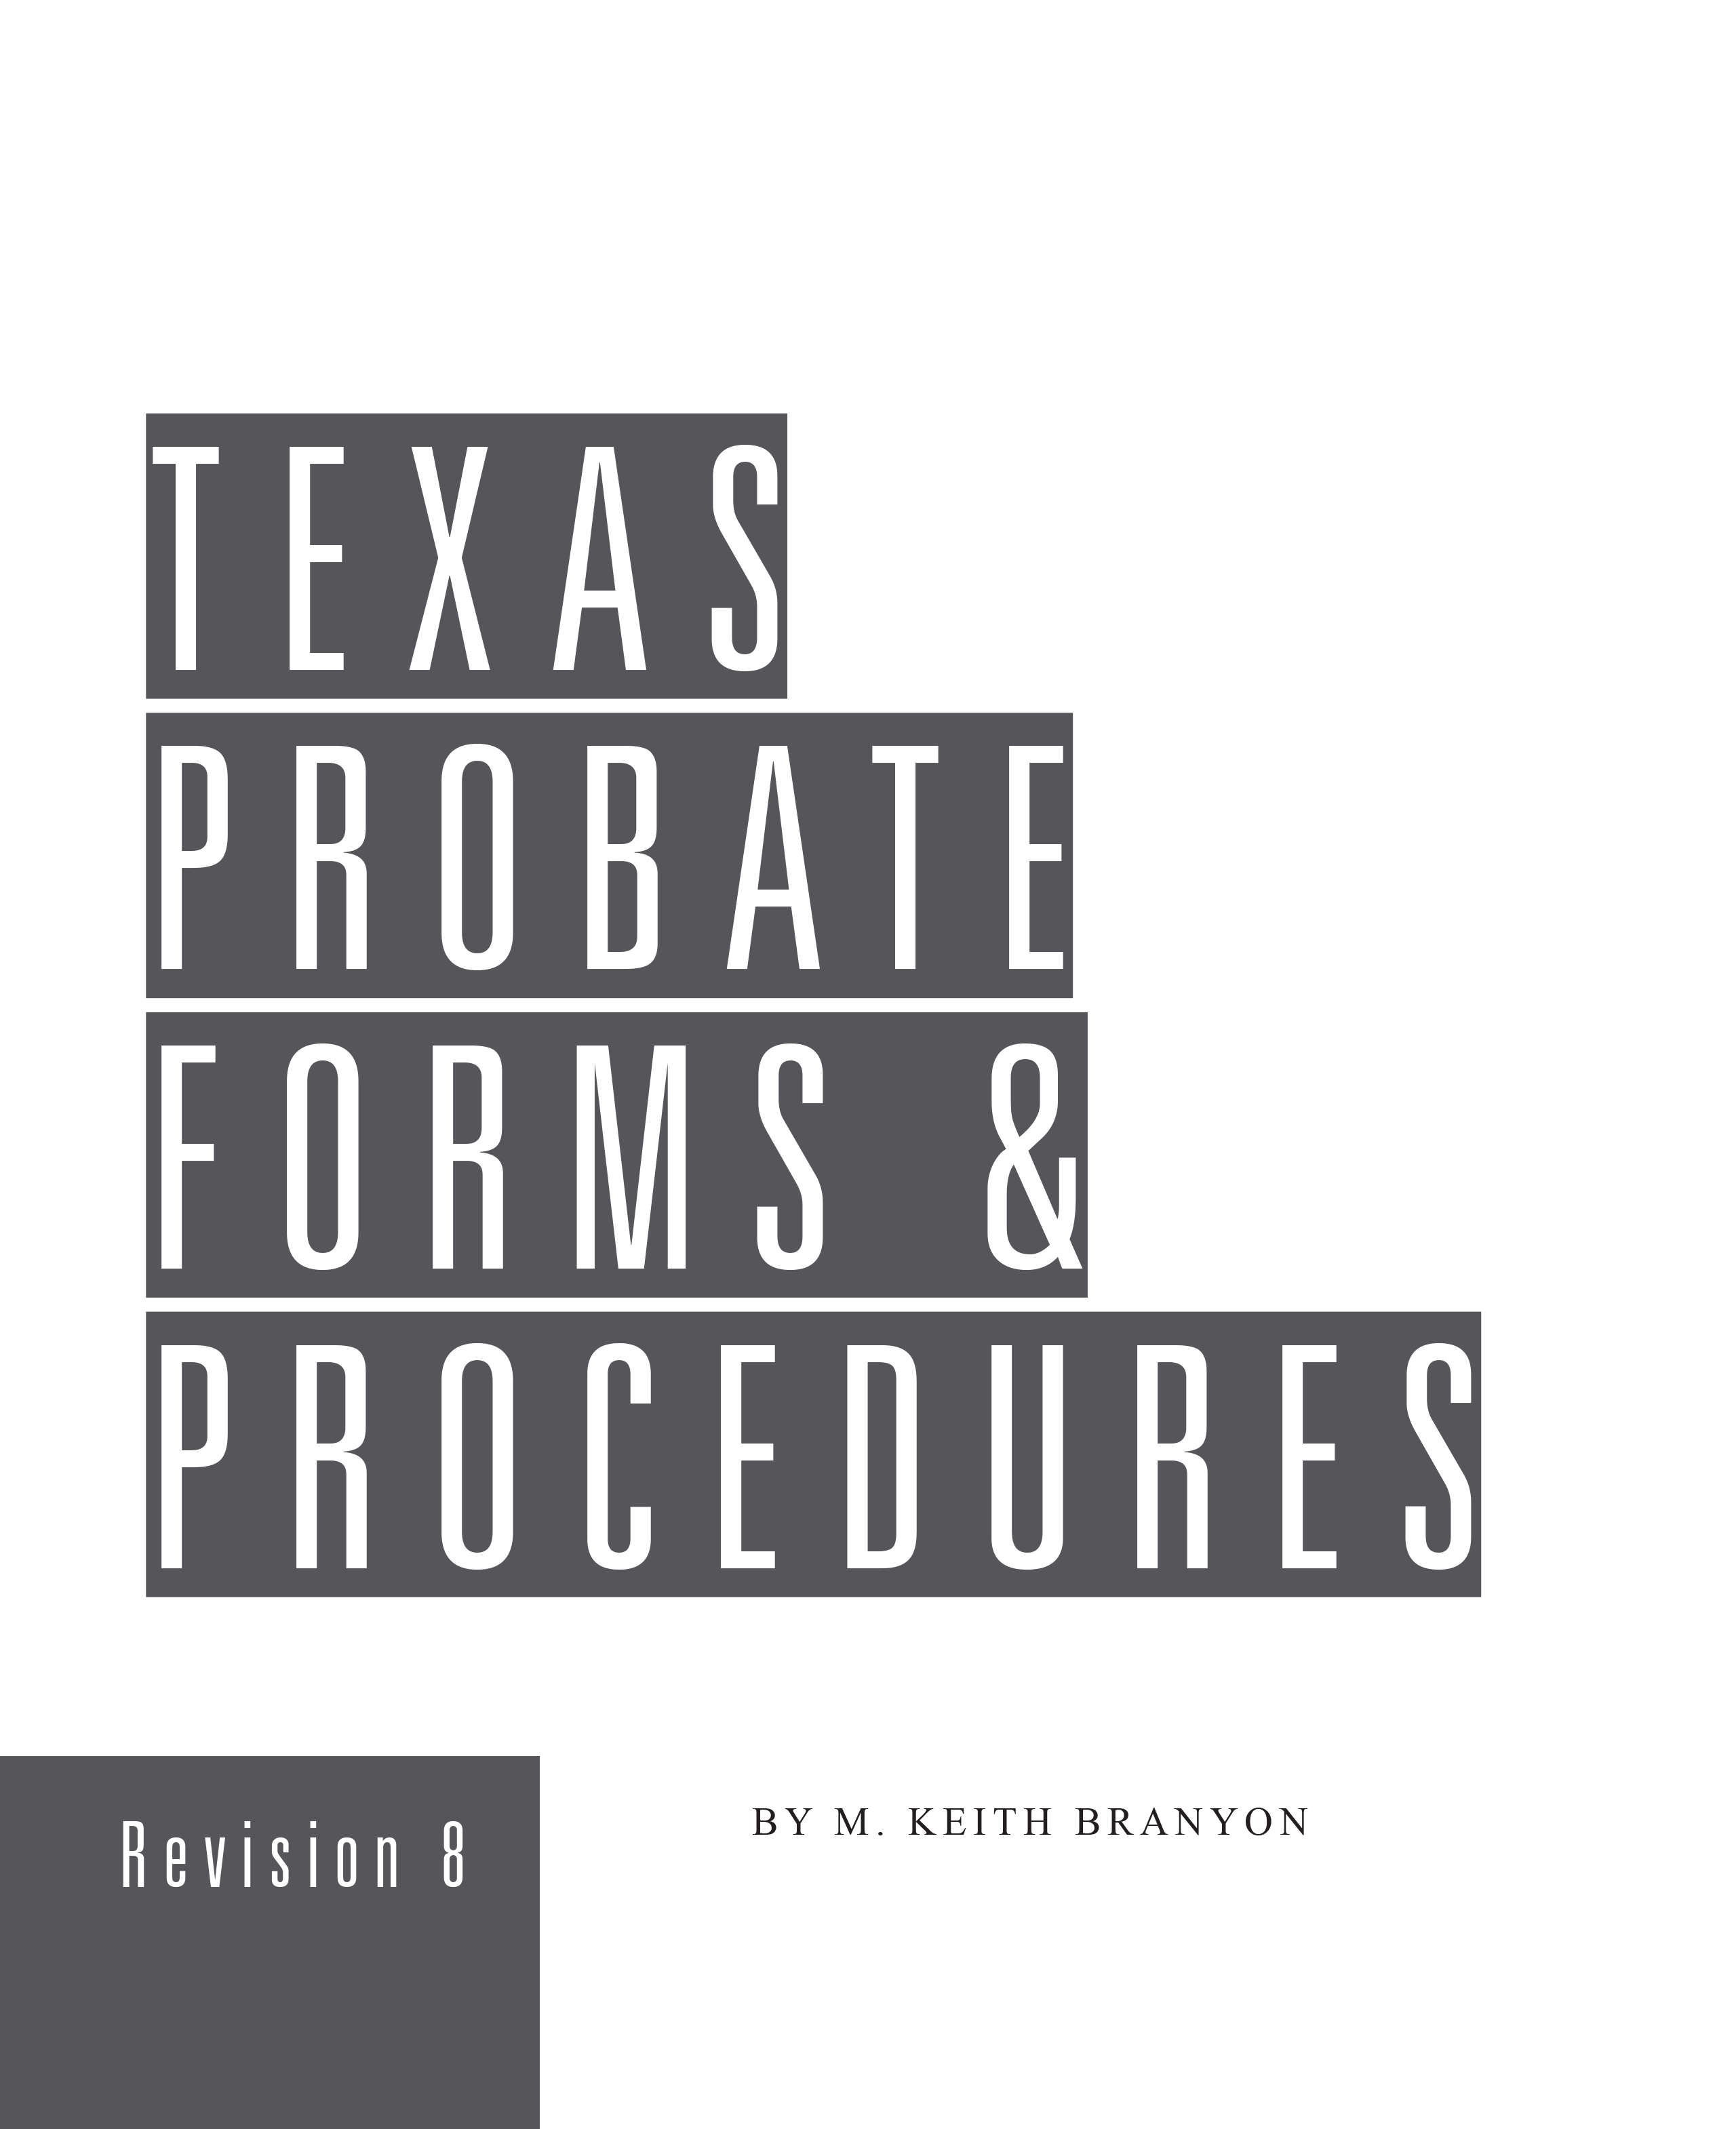 Texas Probate Forms and Procedures